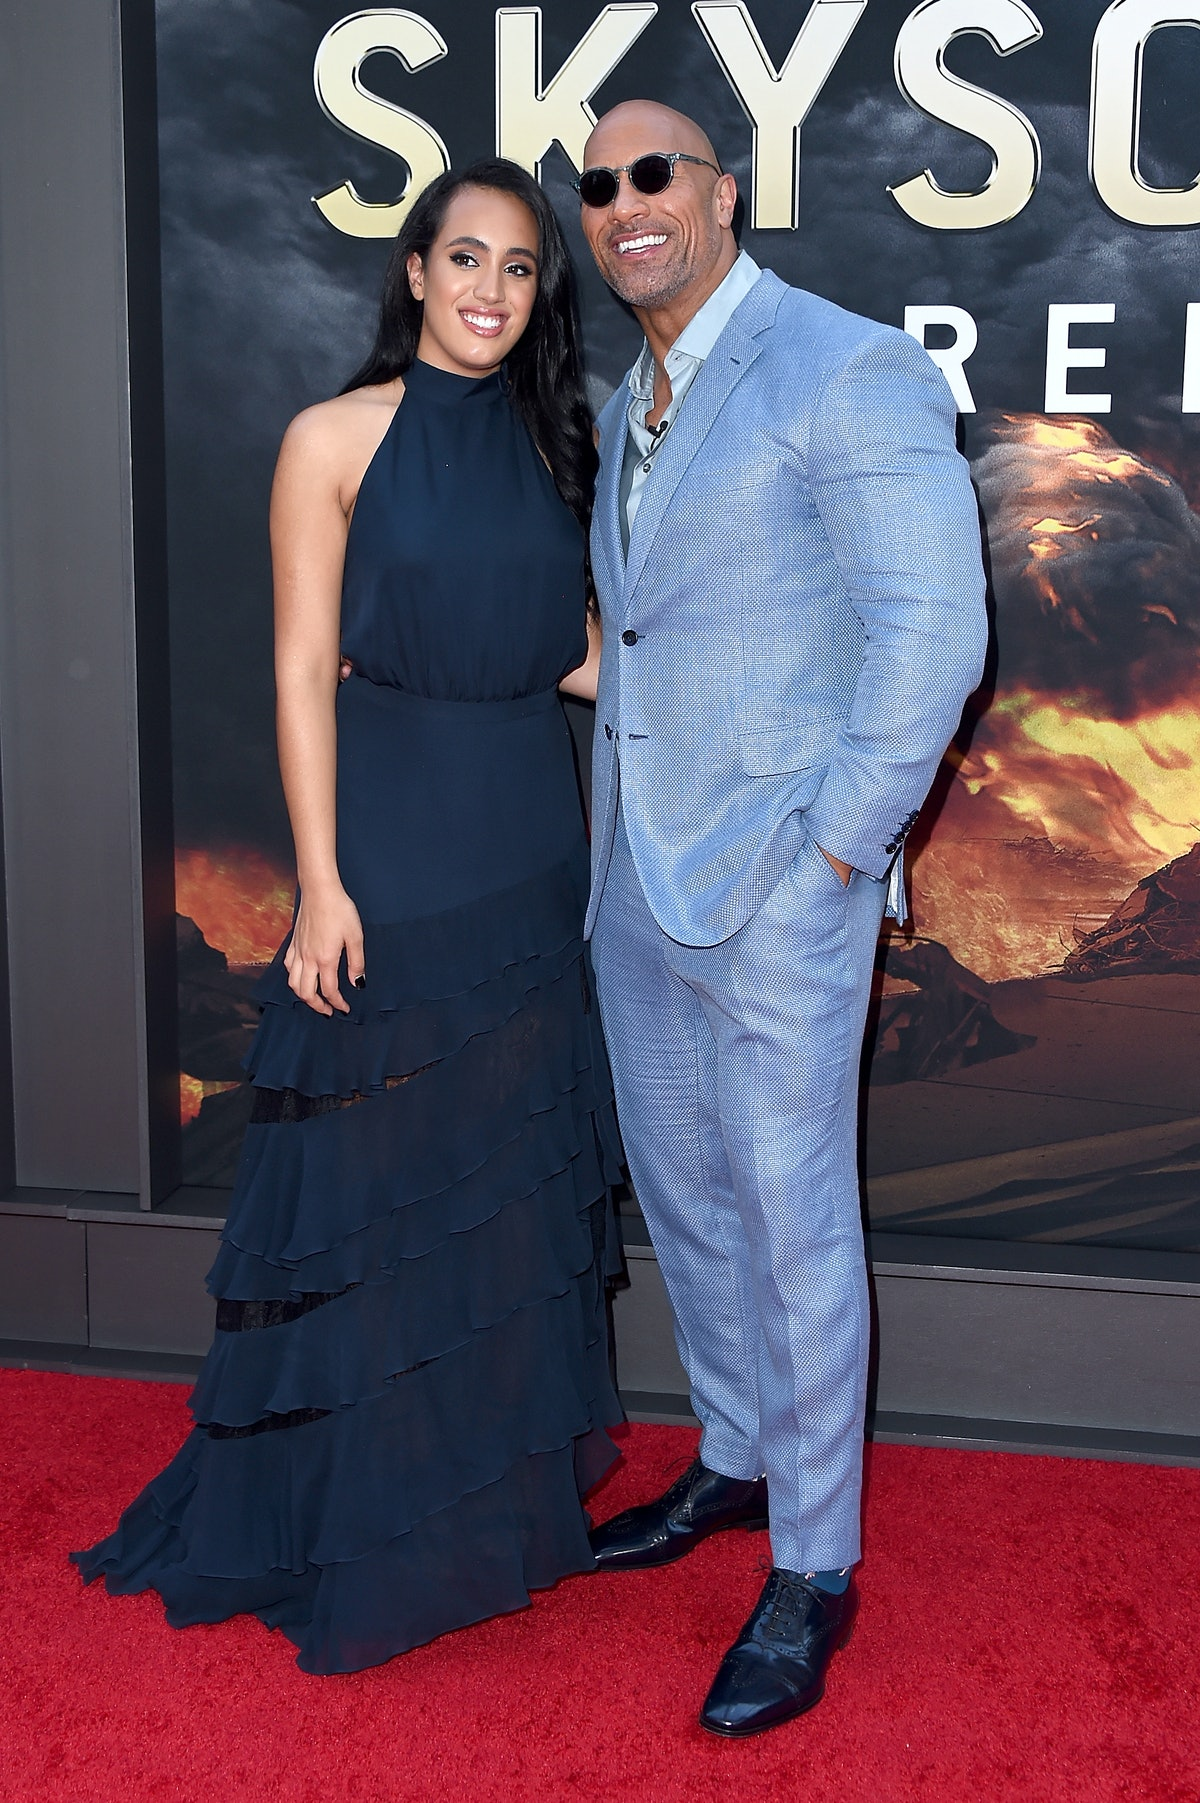 Dwayne Johnson's Photo With His Daughter Who Just Graduated Is The Sweetest Thing